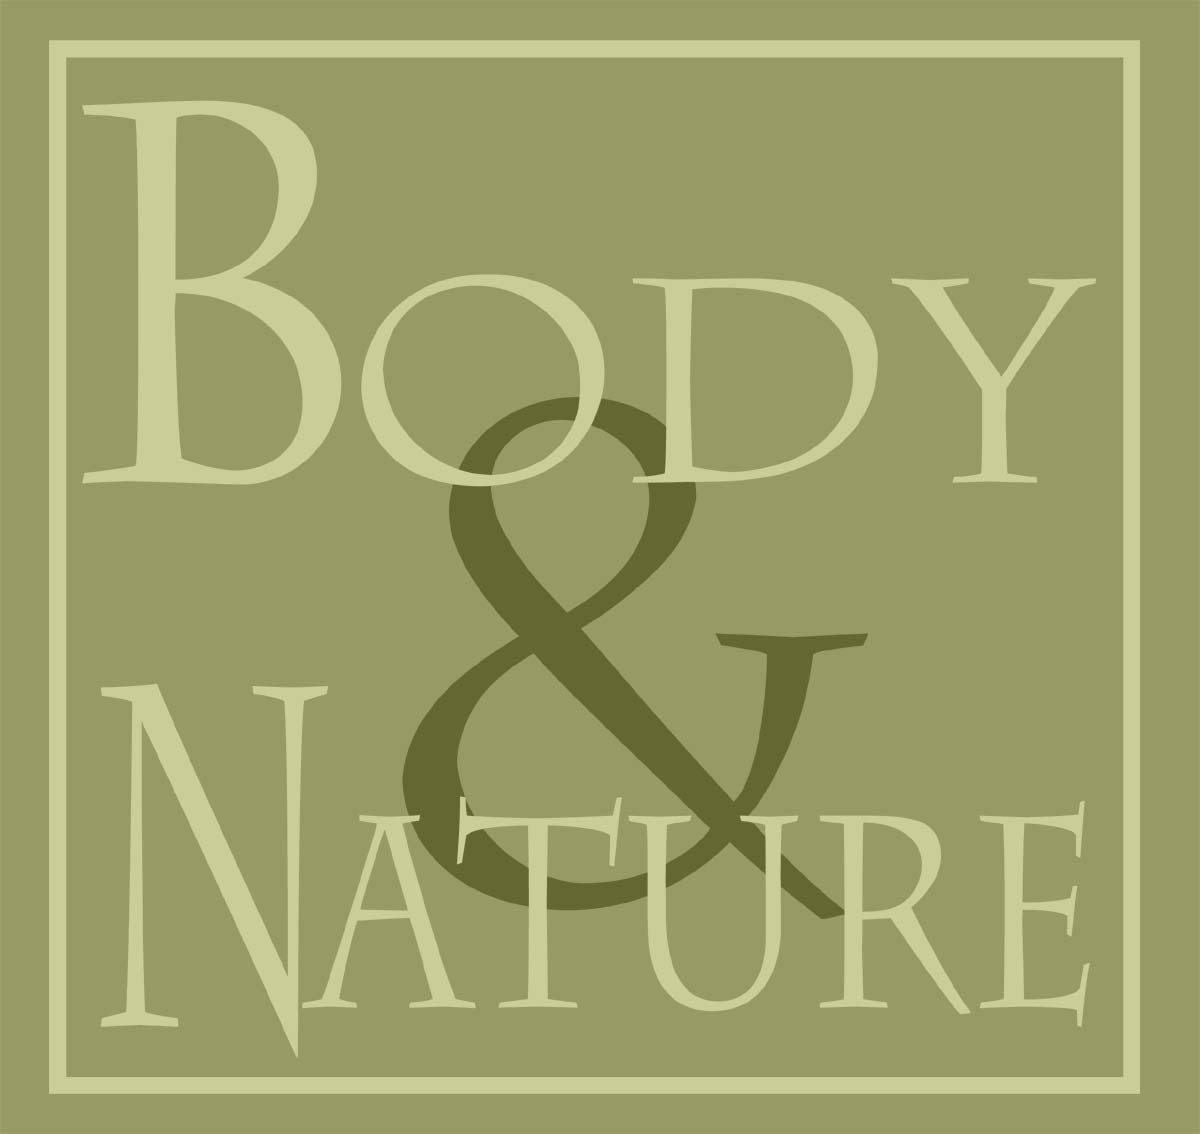 Body and Nature